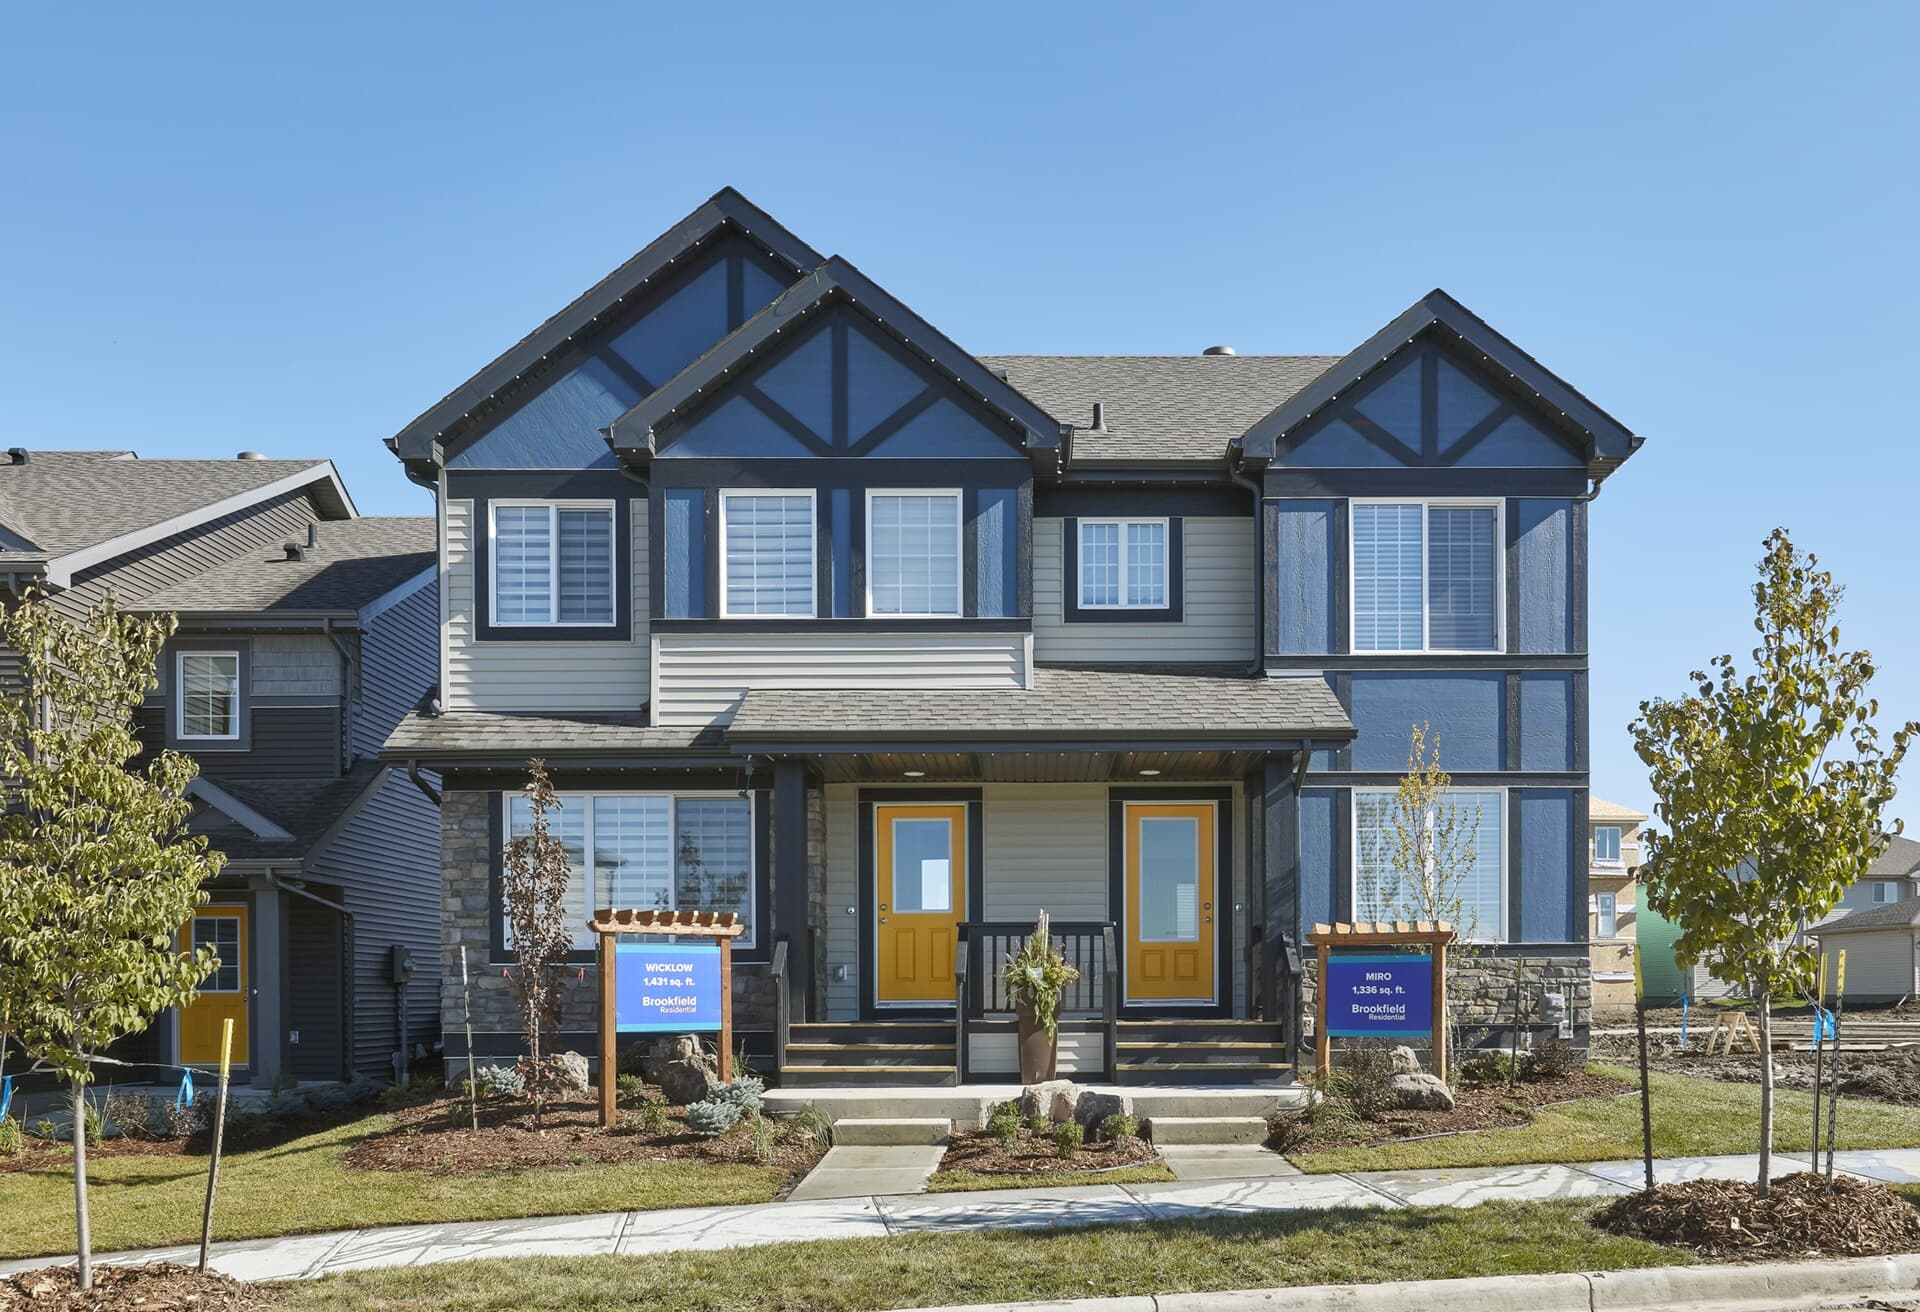 exterior-elevation-wicklow-chappellegardens-edmonton-brookfieldresidential